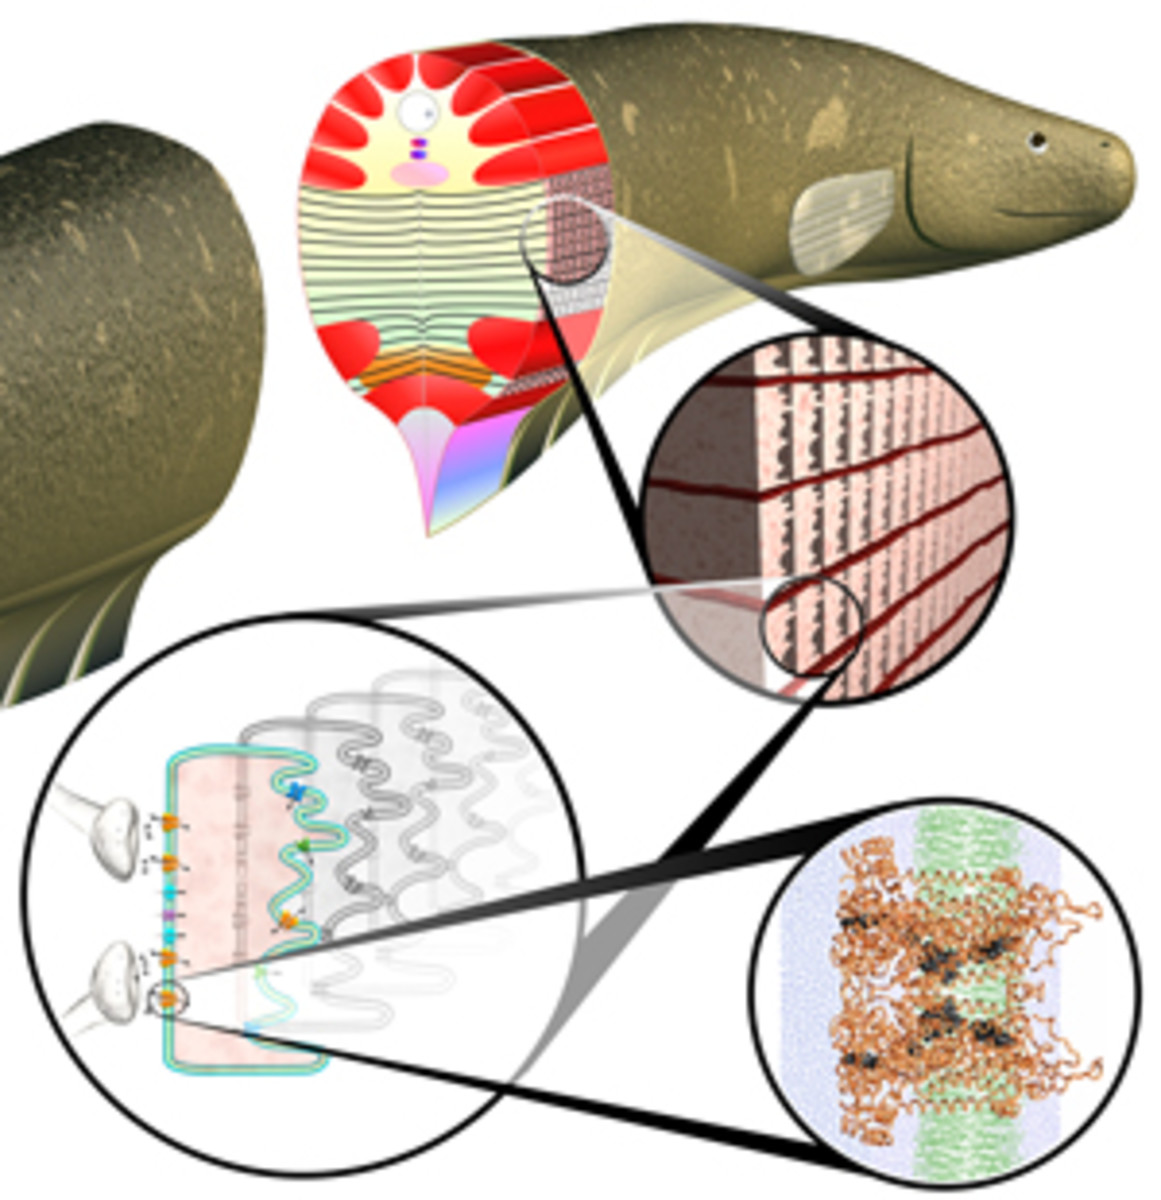 Electric eel anatomy; Models of Eel Cells Suggest Electrifying Possibilities